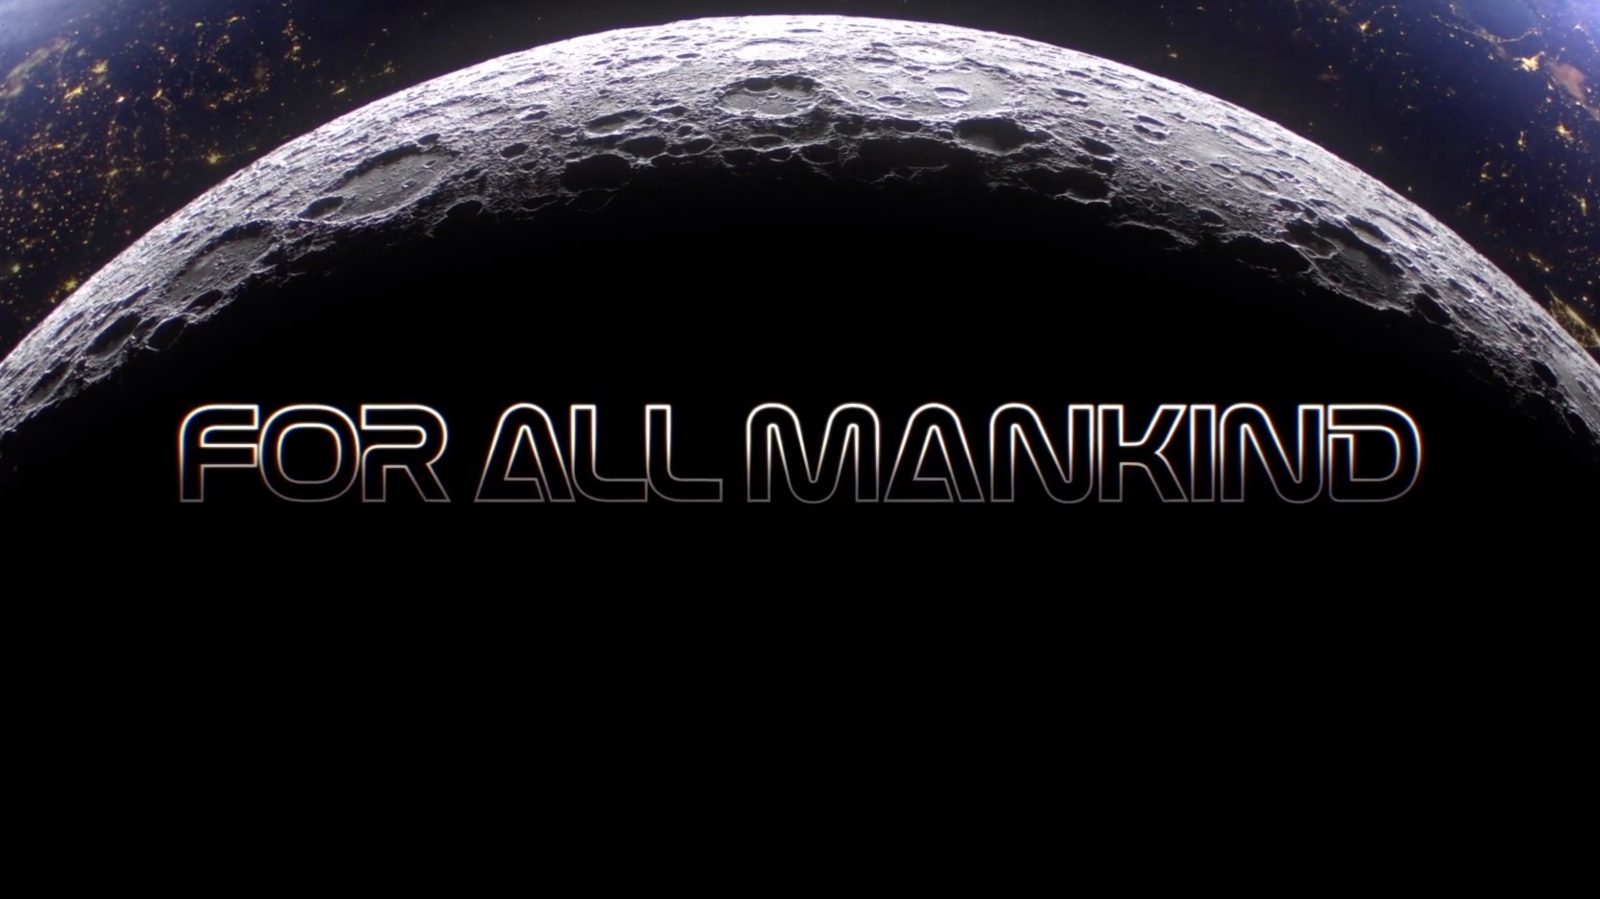 Apple teases 'For All Mankind' original TV series - 9to5Mac